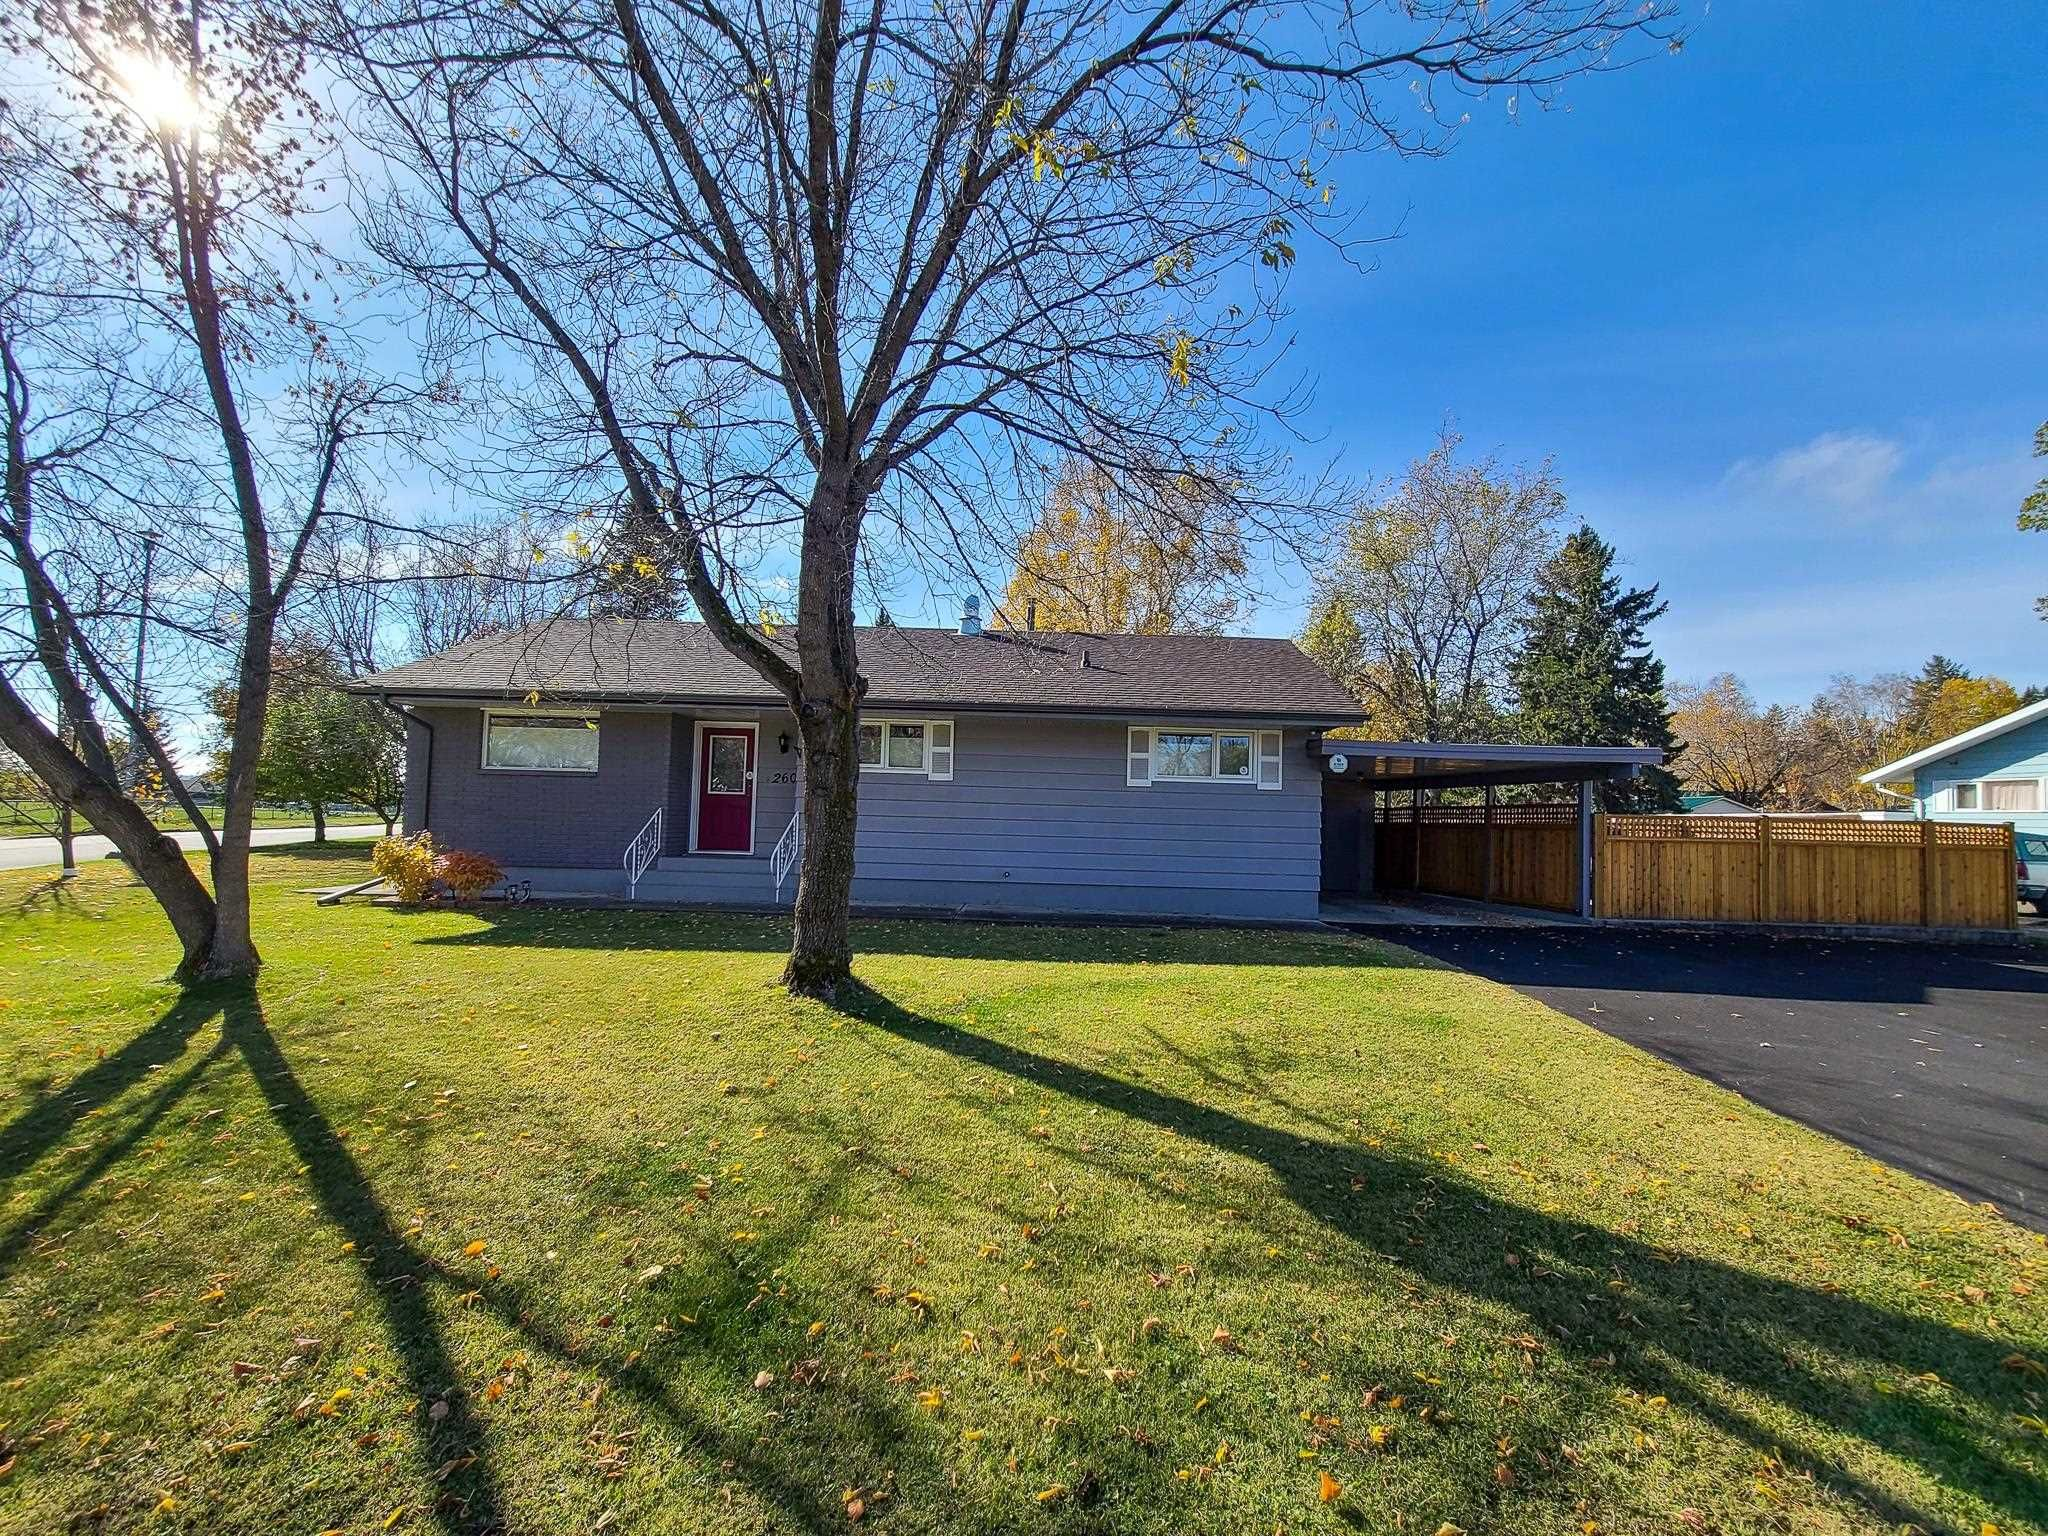 """Main Photo: 2602 ELLISON Drive in Prince George: Seymour House for sale in """"SEYMOUR"""" (PG City Central (Zone 72))  : MLS®# R2625702"""